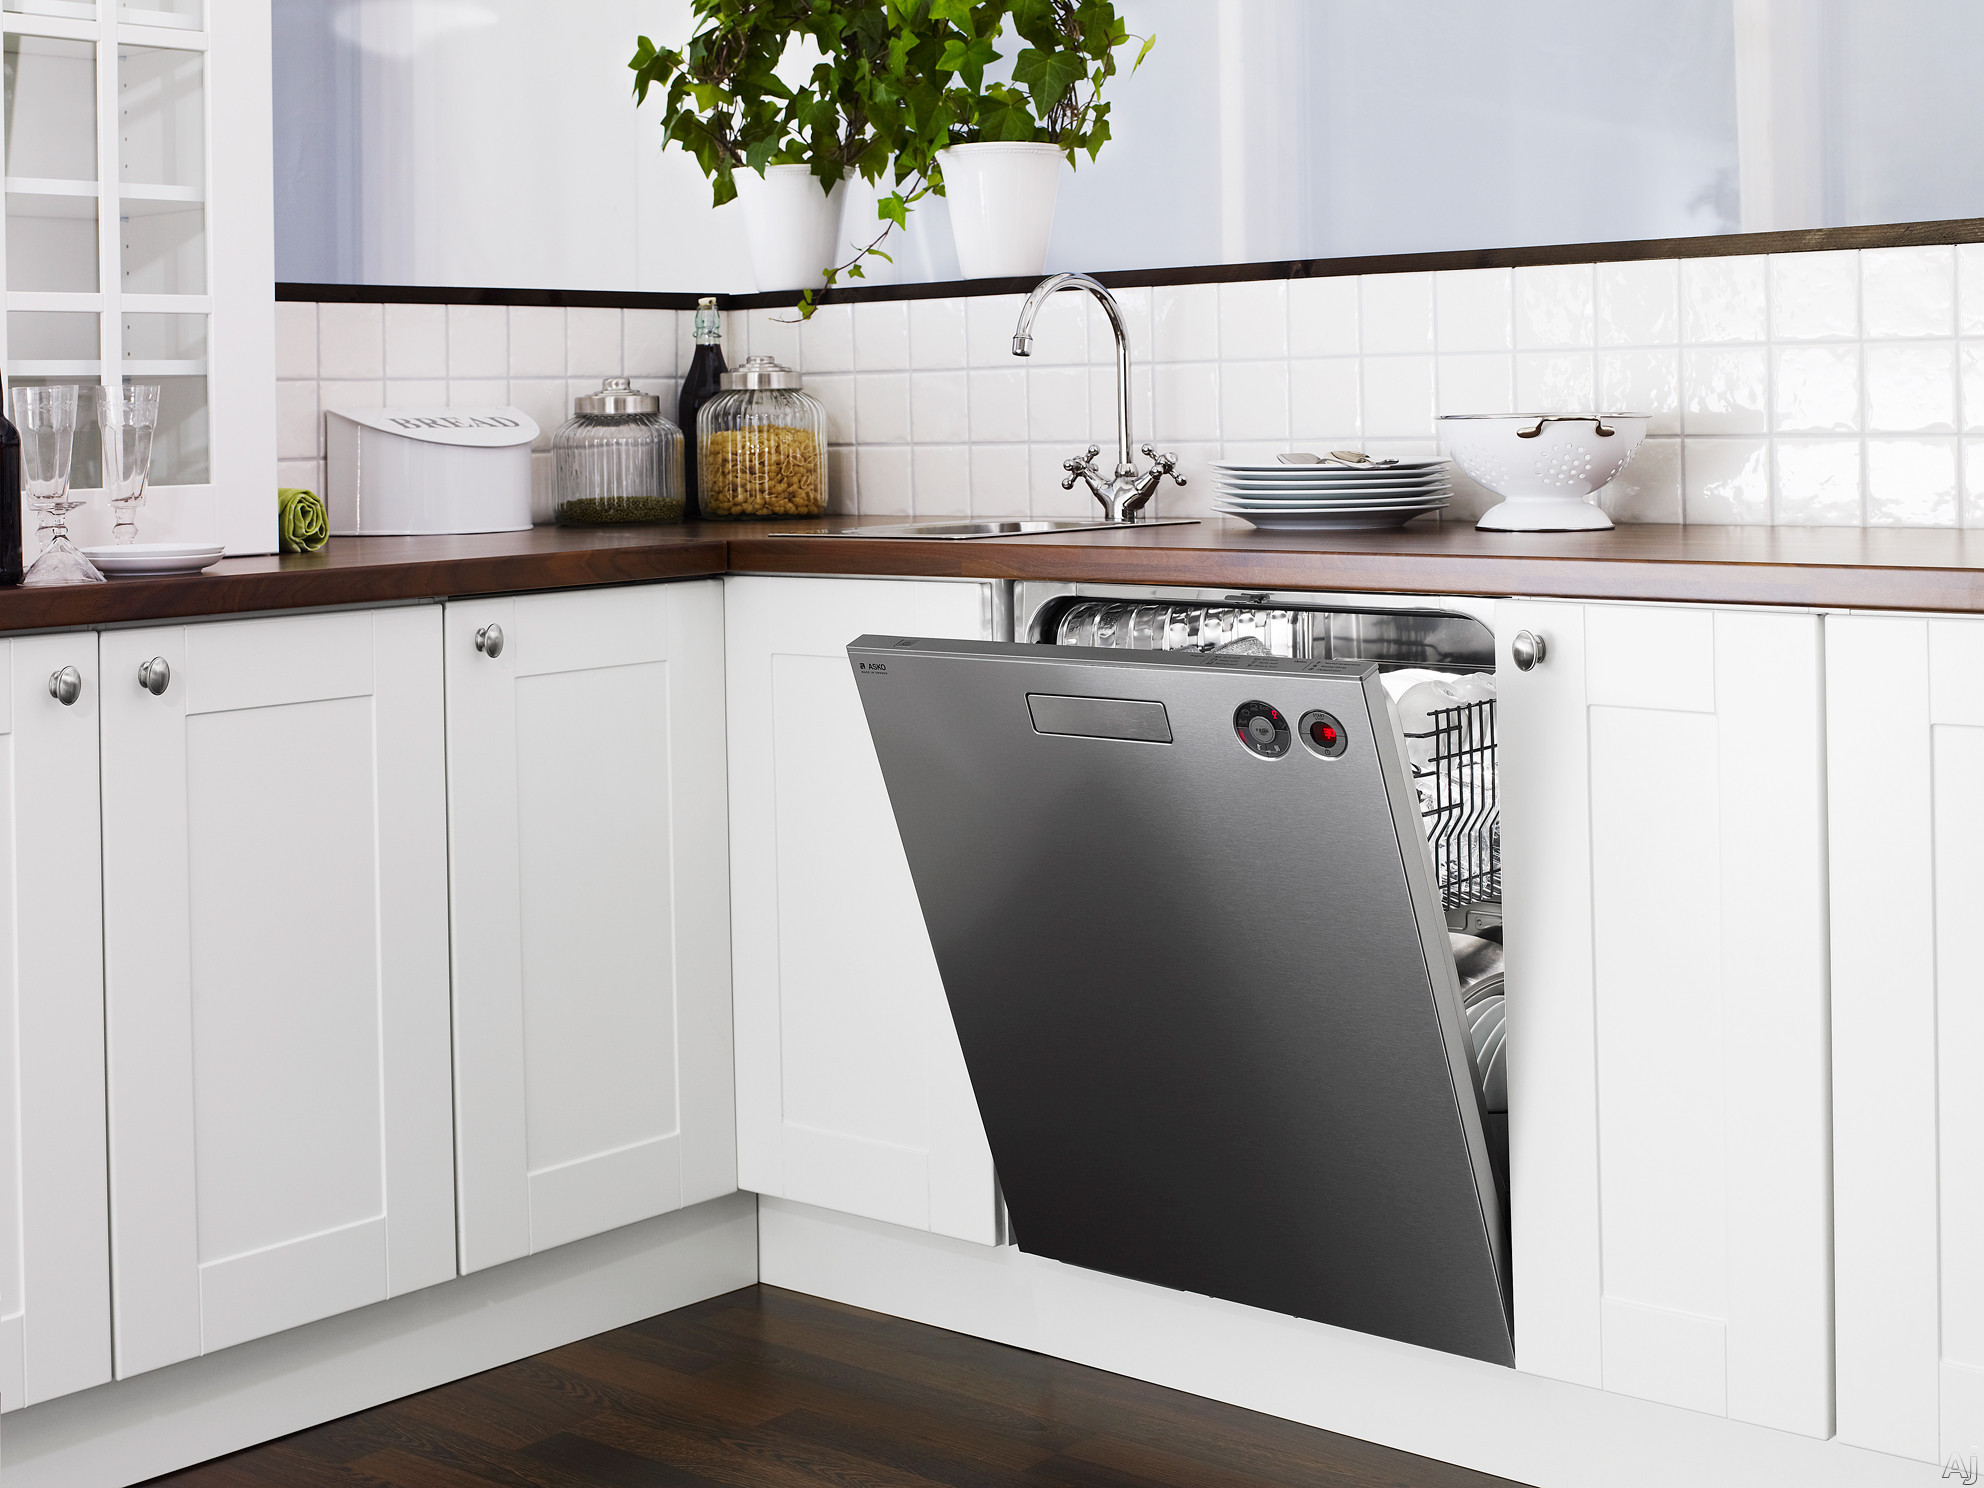 Onderbouw Wasmachine 5 Uses For Ikea Panels Or Fronts For Integrated Appliances